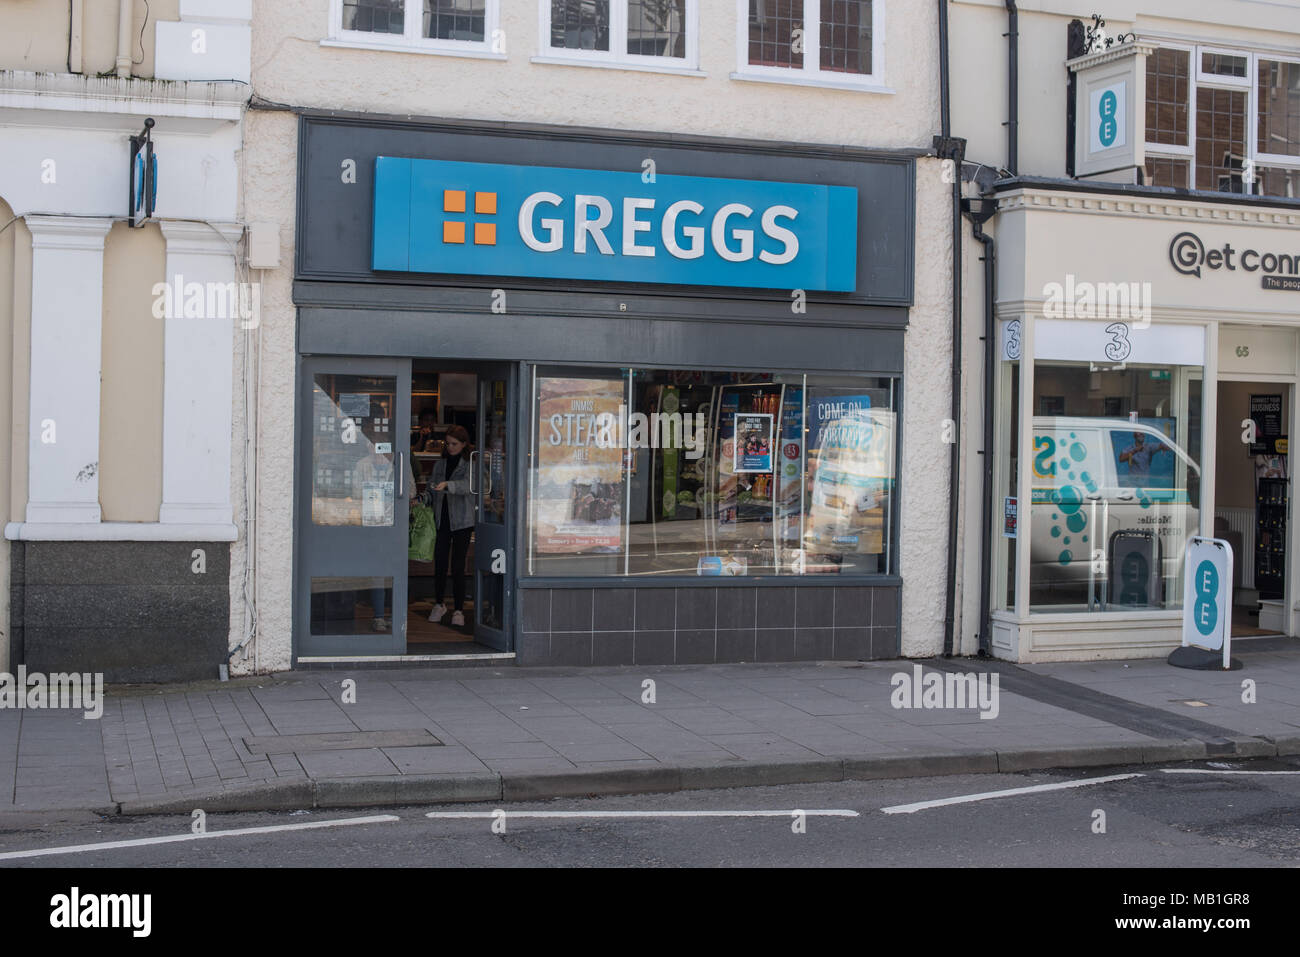 A small little Greggs the bakers food outlet on the highstreet in Newport in Shropshire, one of the 1764 in the UK - Stock Image